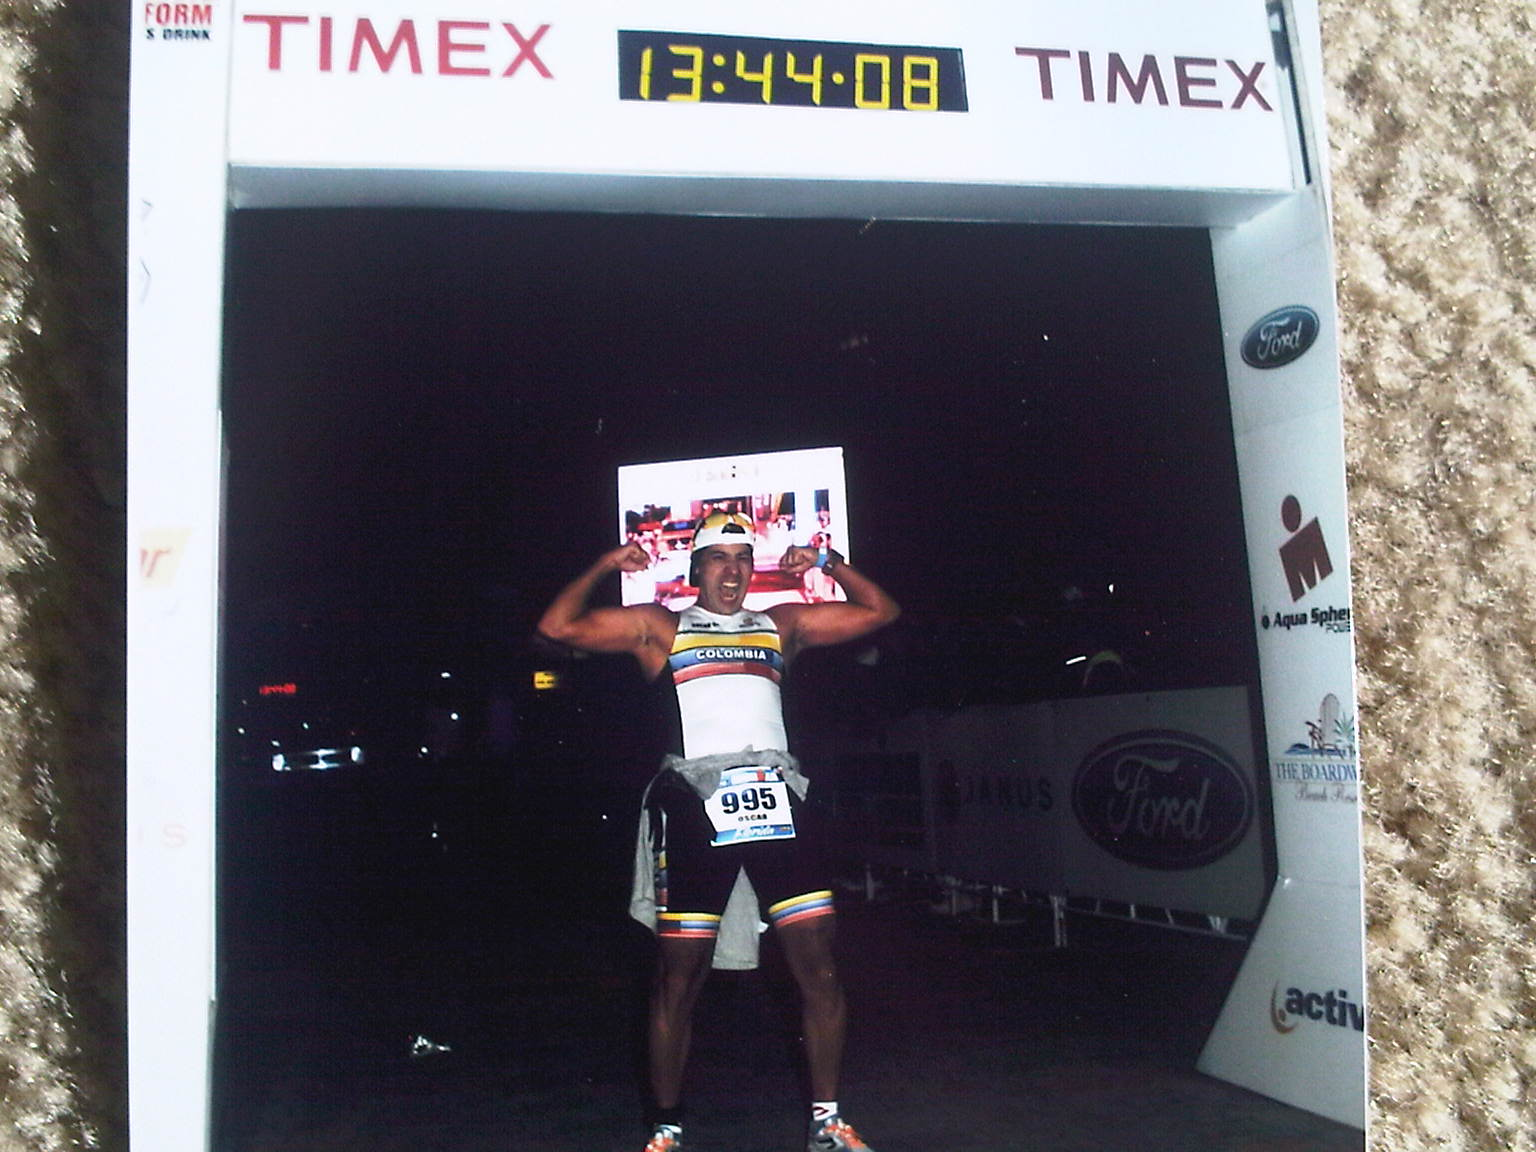 IronMan Florida 2010